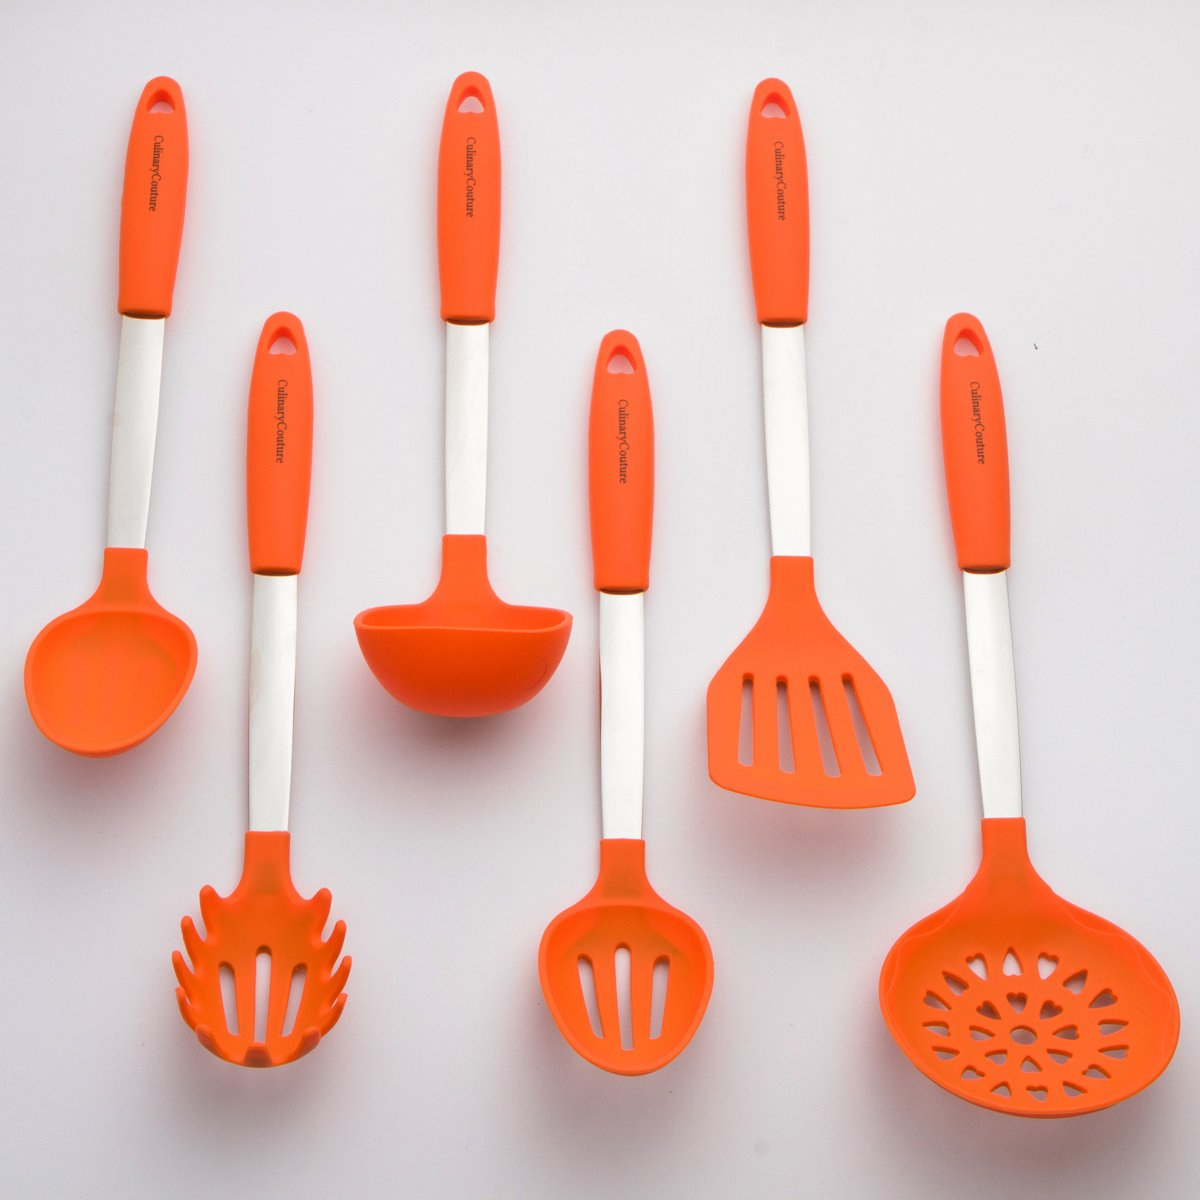 Amazon.com: Orange Cooking Utensil Set   Stainless Steel U0026 Silicone Heat  Resistant Professional Kitchen Tools   Spatula, Mixing U0026 Slotted Spoon,  Ladle, ...